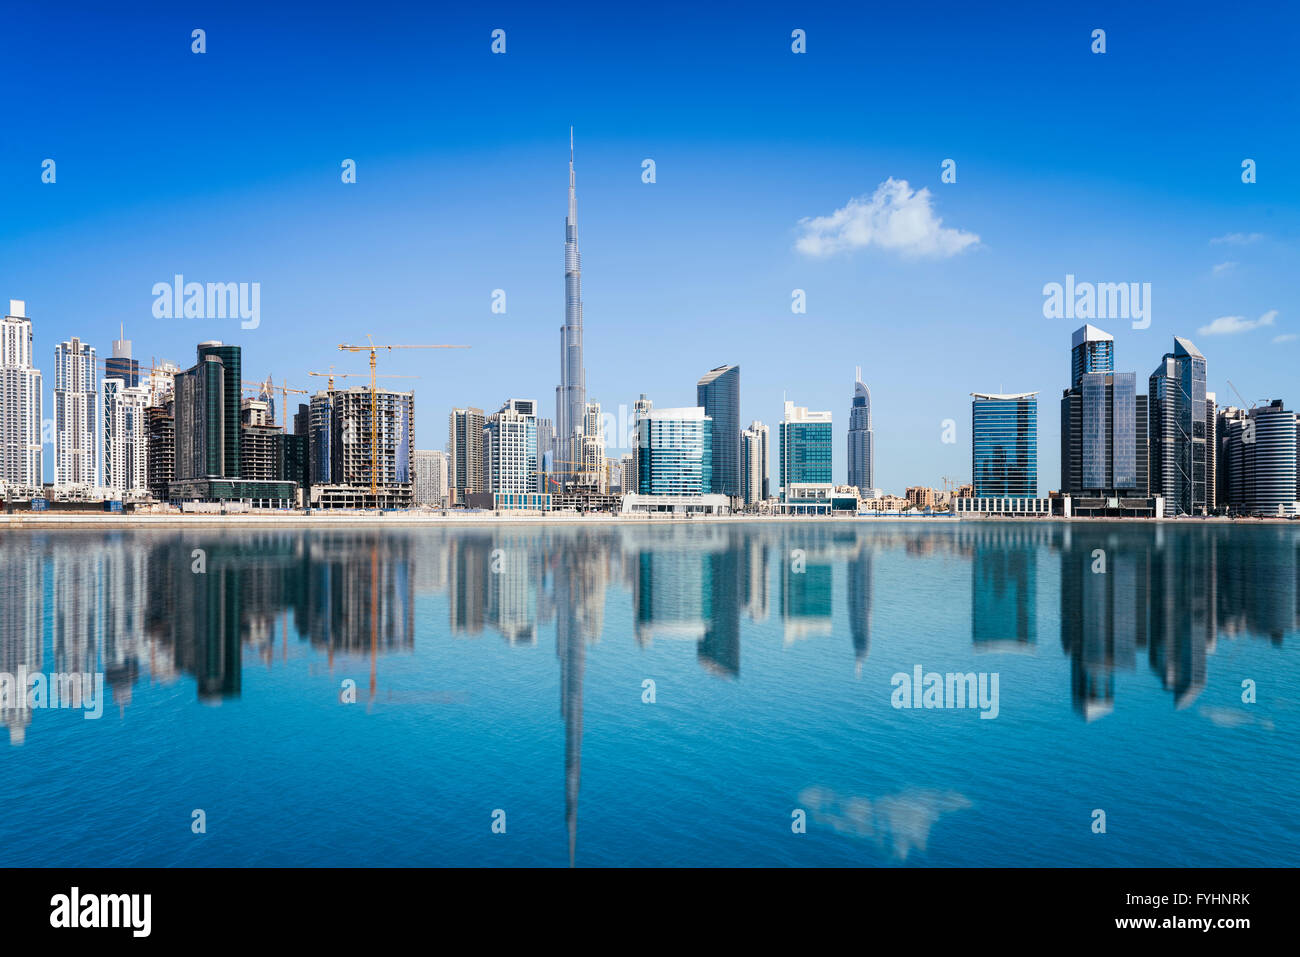 Les toits de Dubaï, Émirats Arabes Unis Photo Stock